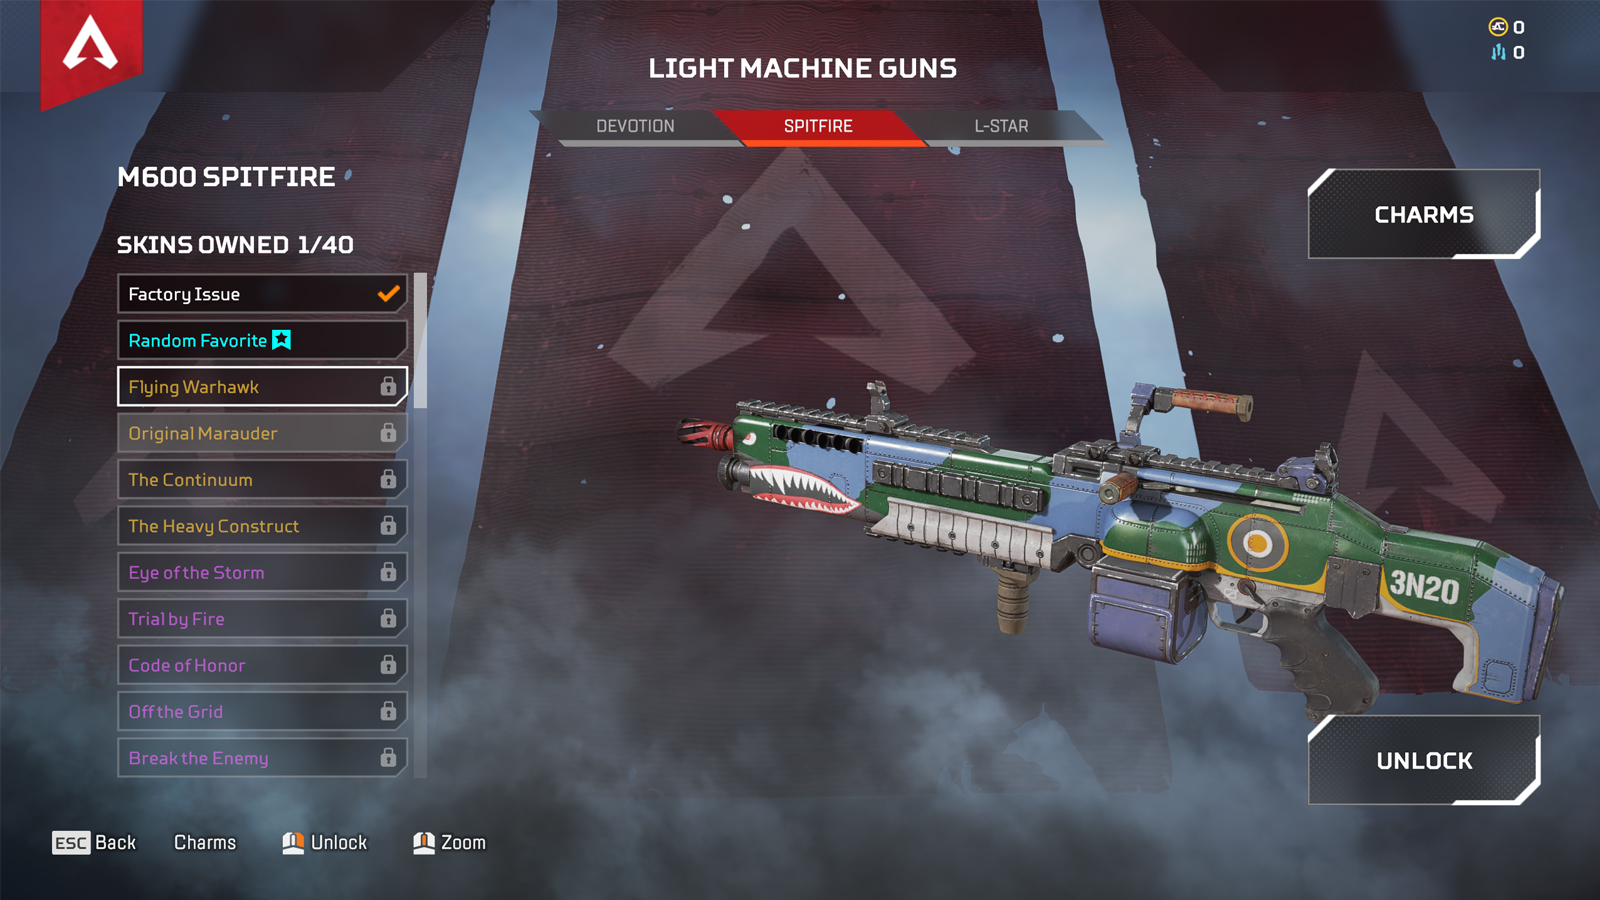 The M600 Spitfire in the Apex Legends loadout menu